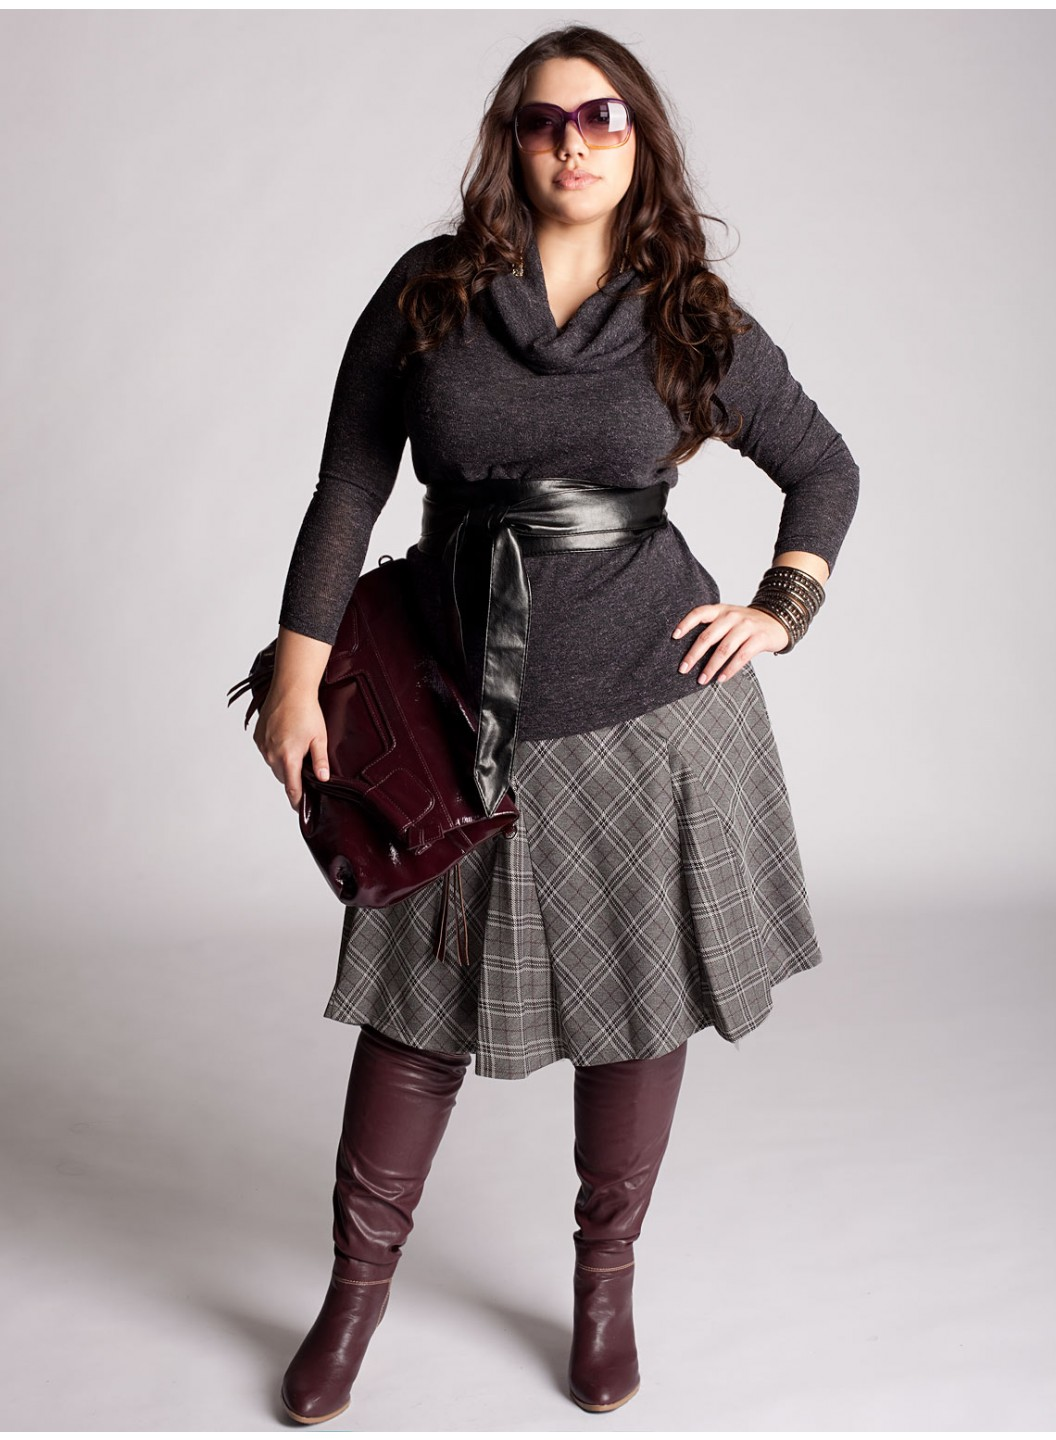 fashion tights skirt dress heels : Plus Size Fashion